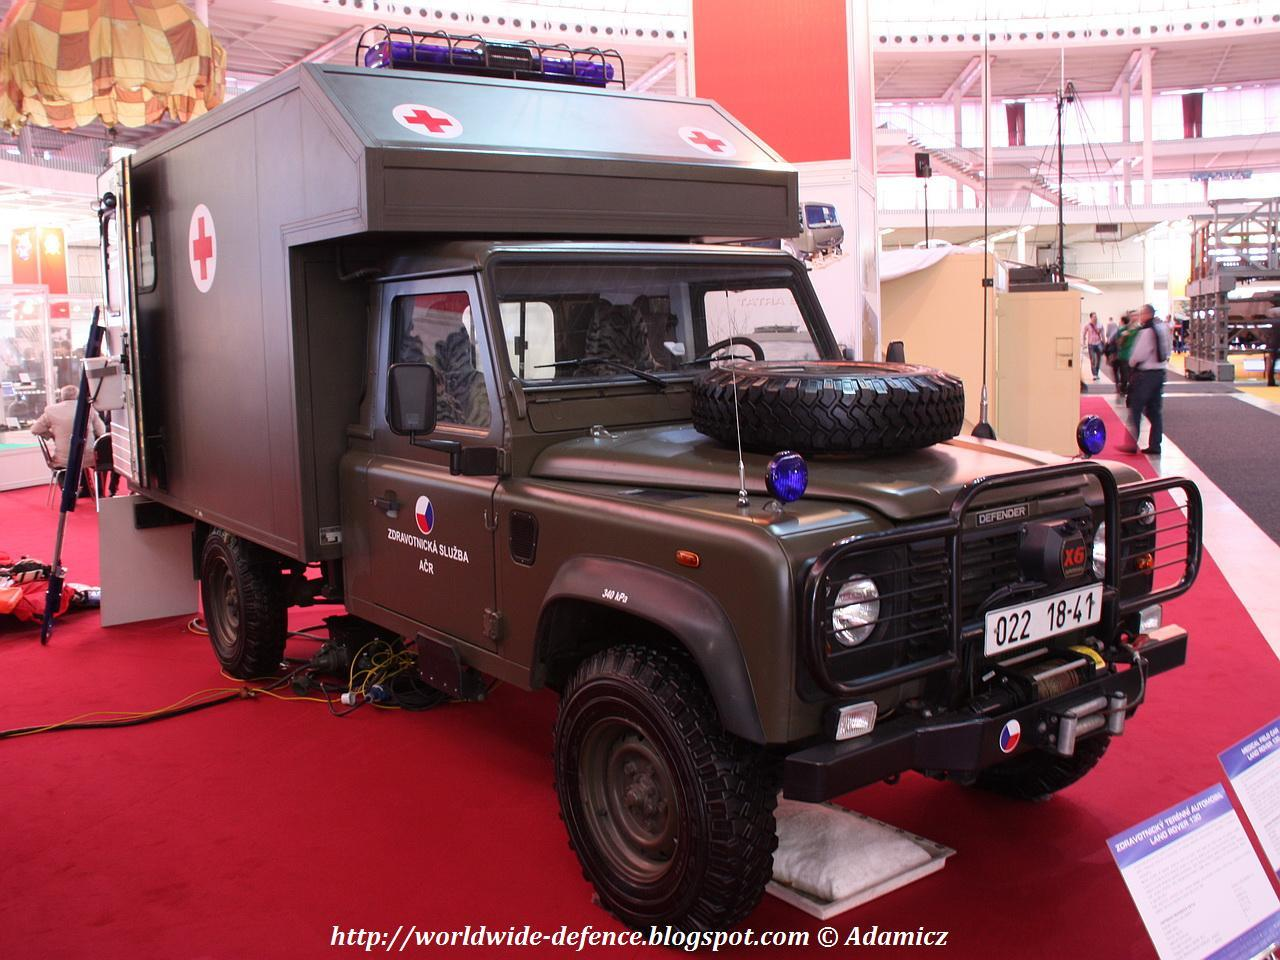 #LandRover Ambulance Adaptation - Czech Republic